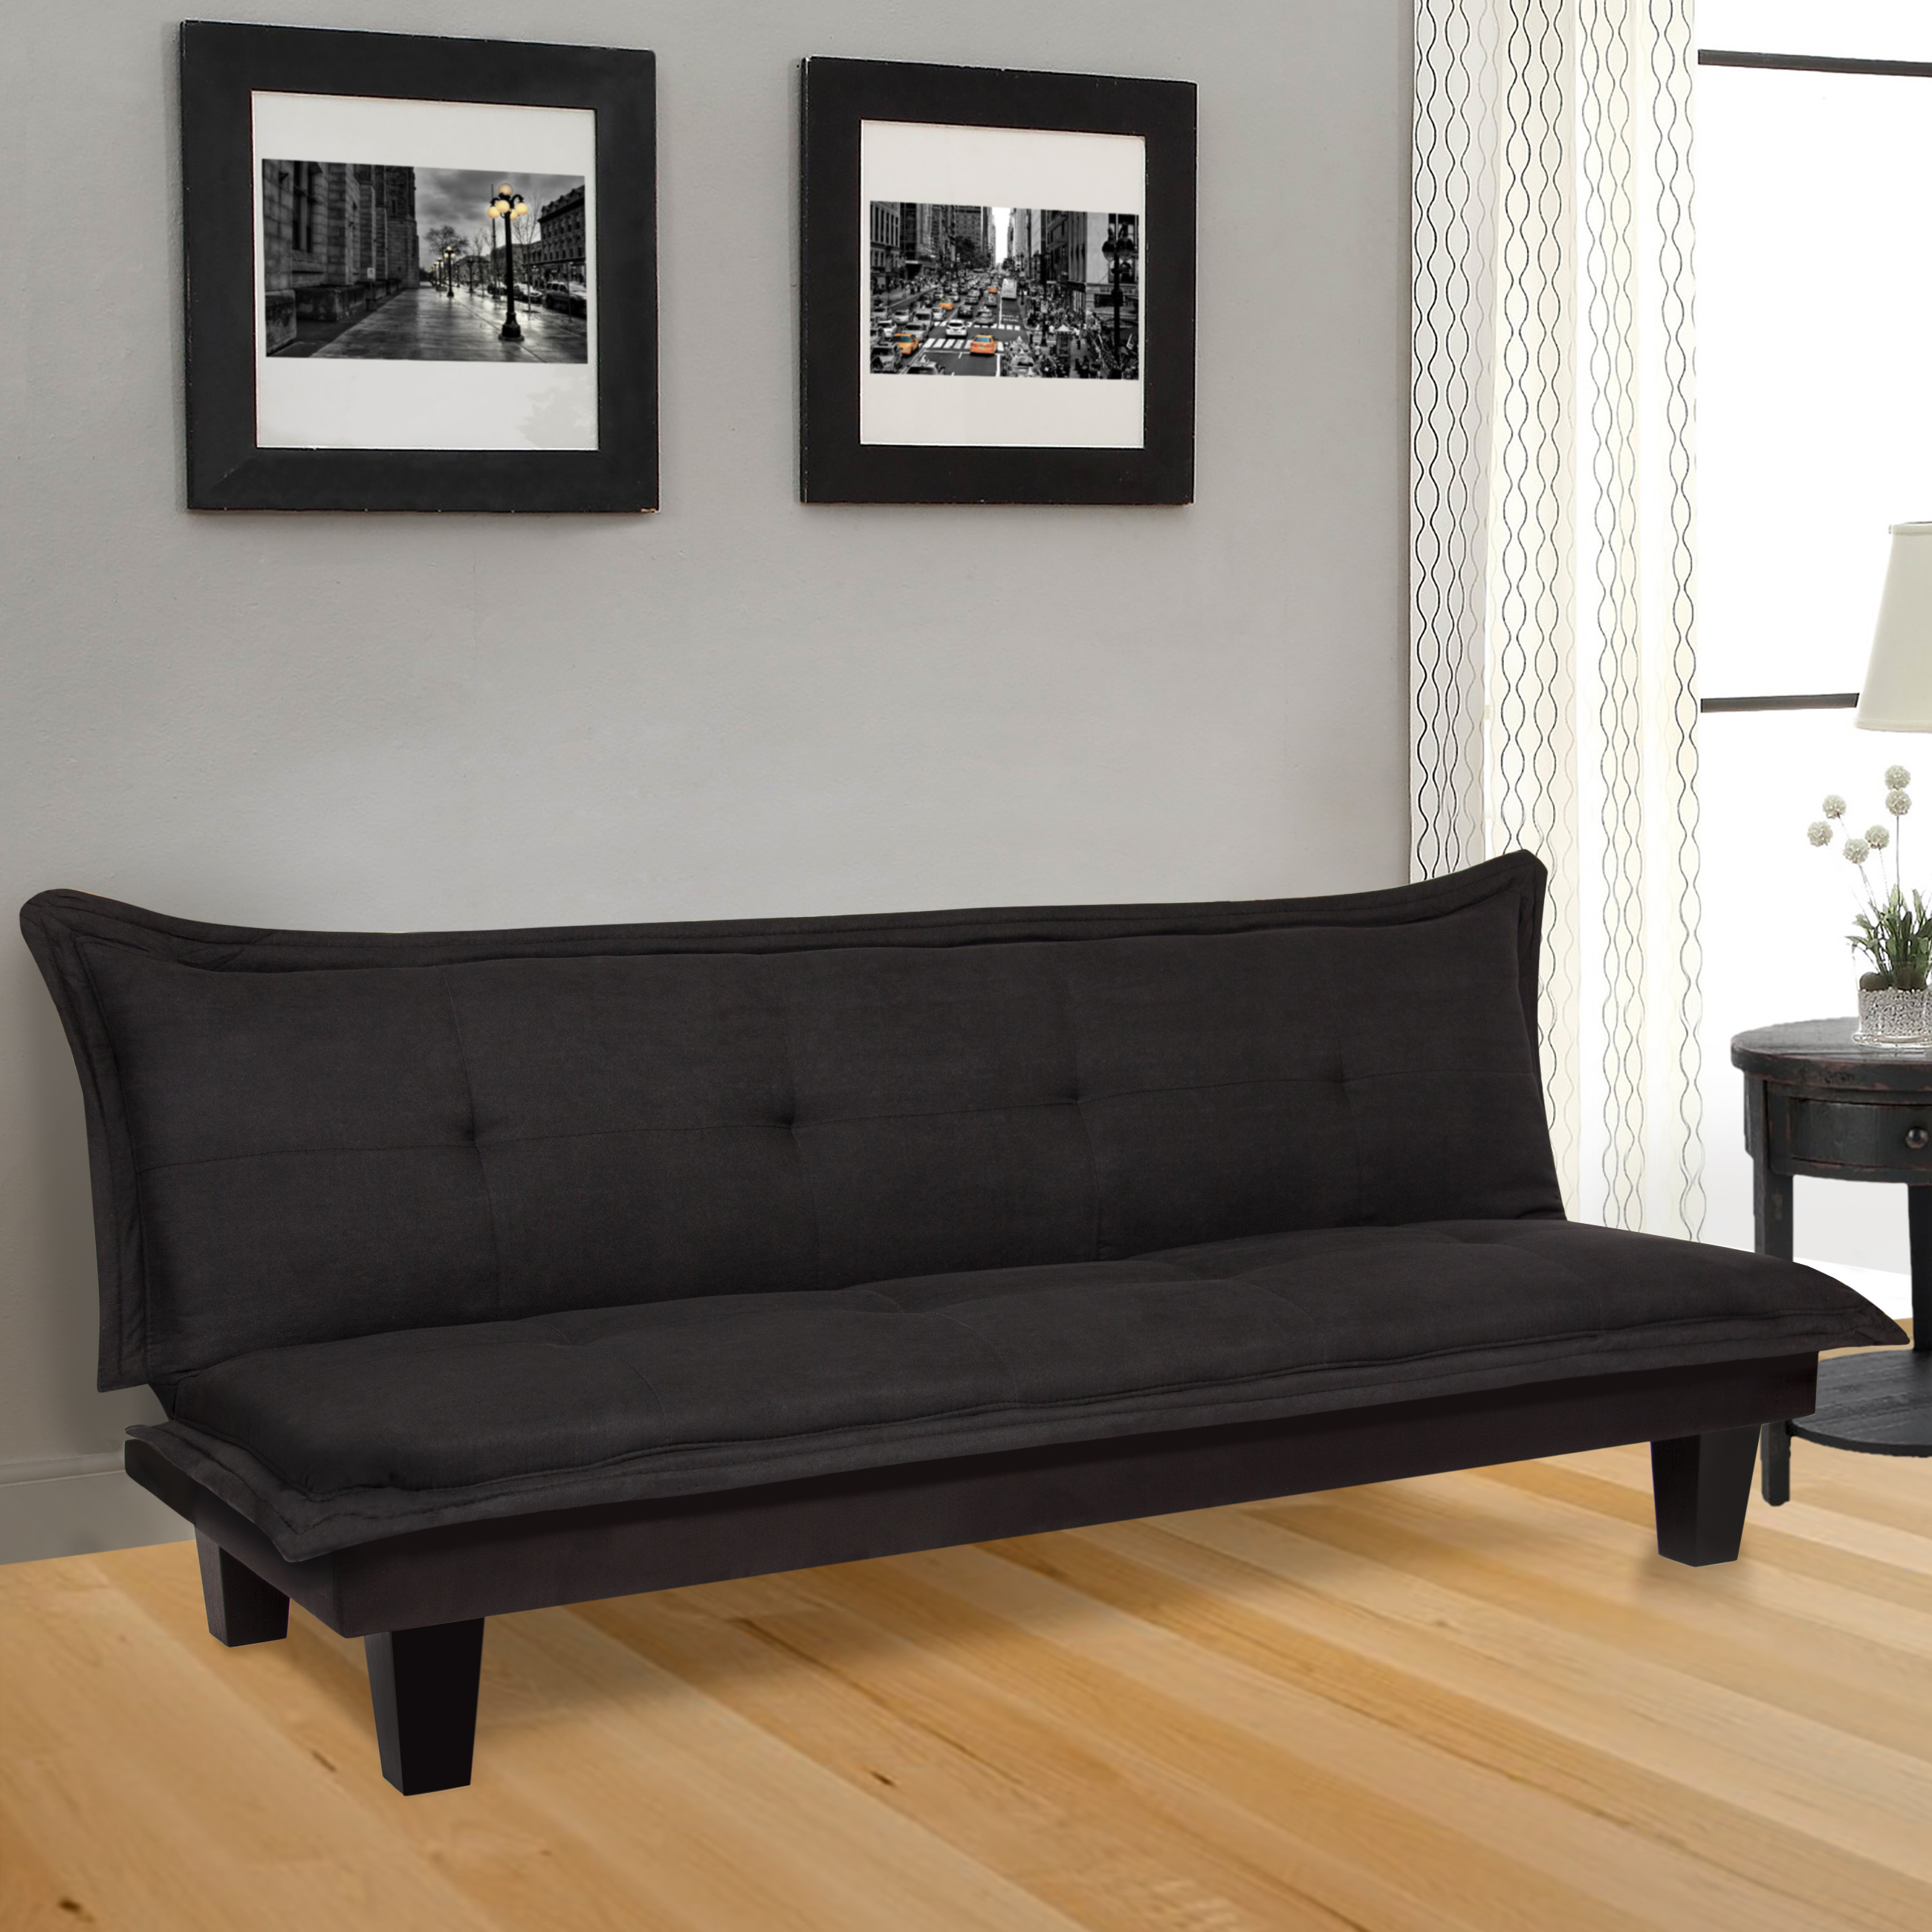 Best Choice Products Convertible Modern Futon Couch And Sofa Bed Lounger Sleeper by